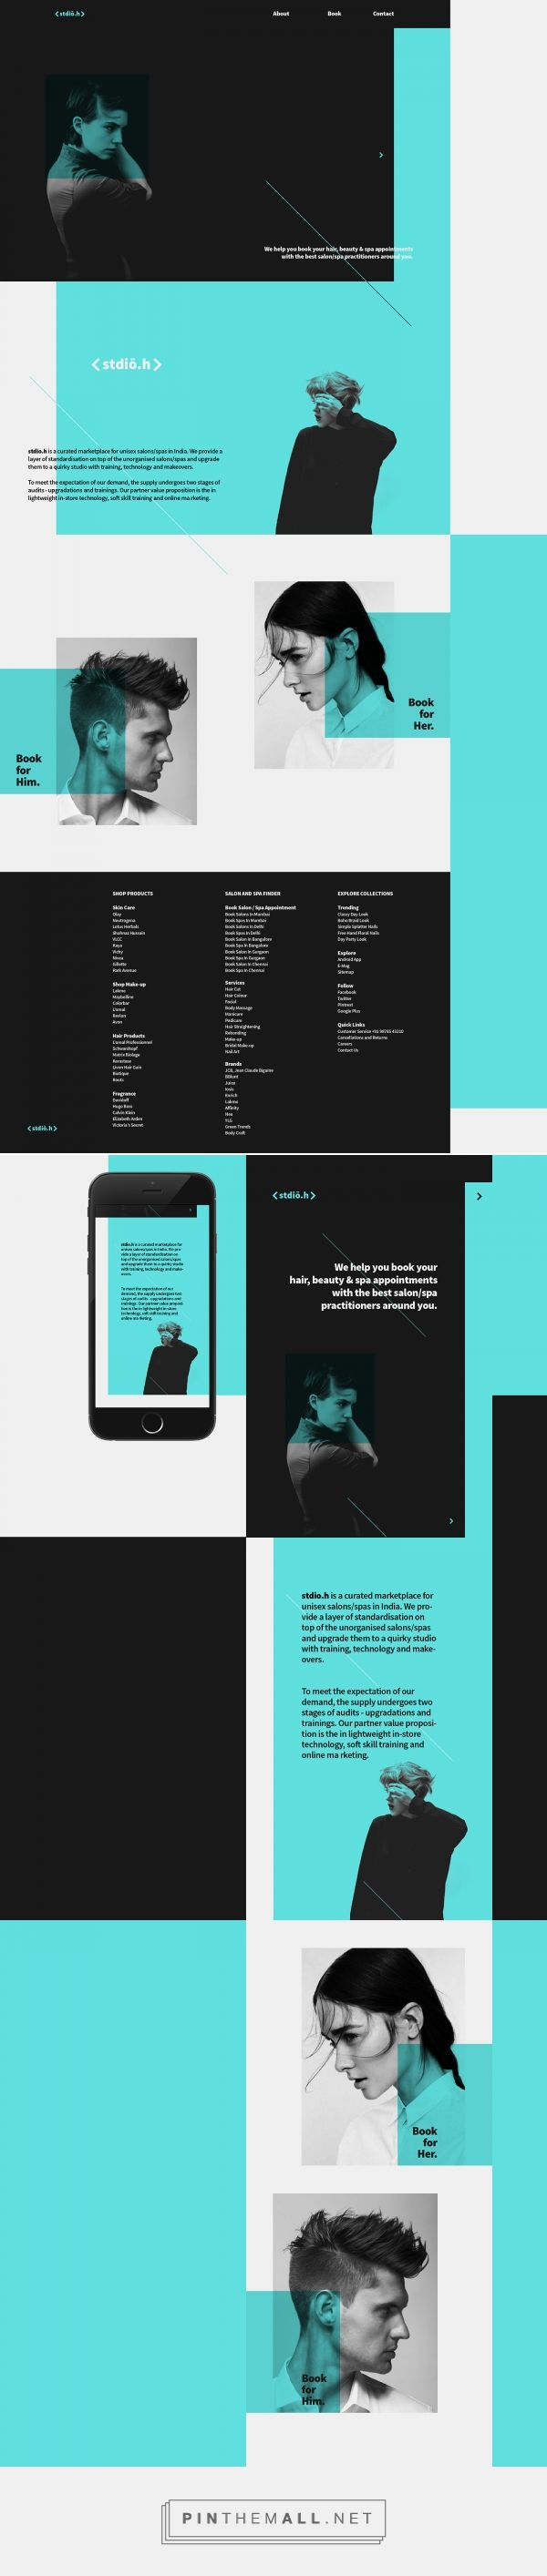 Stdio.h Salon Web Design by Utkarsh Raut | Fivestar Branding Agency – Design and Branding Agency & Curated Inspiration Gallery